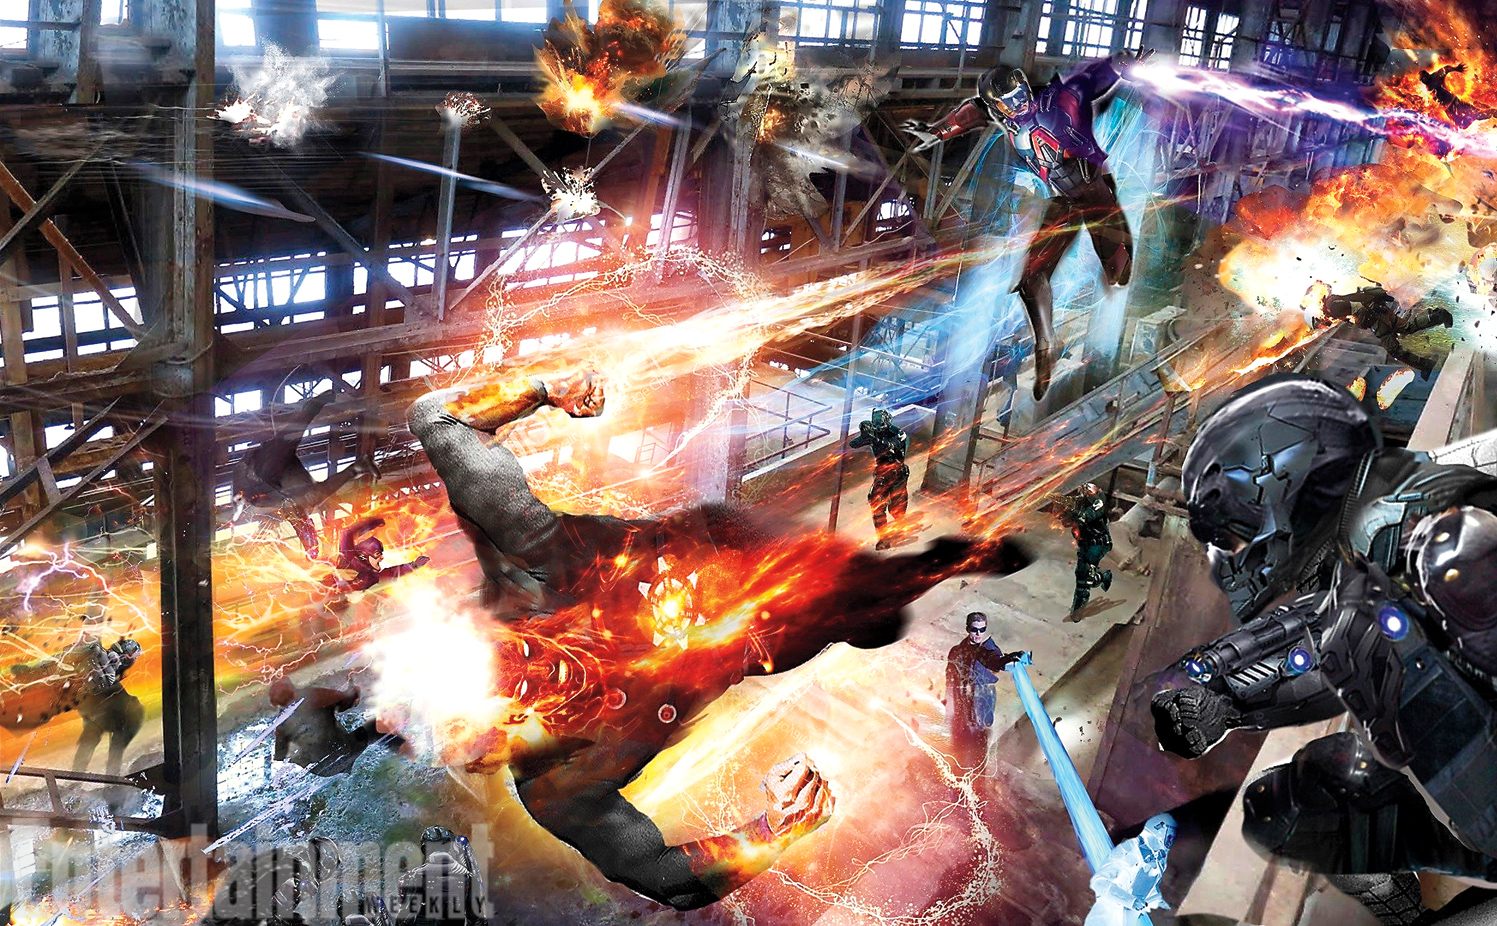 CW Legends of Tomorrow Concept Art featuring Firestorm